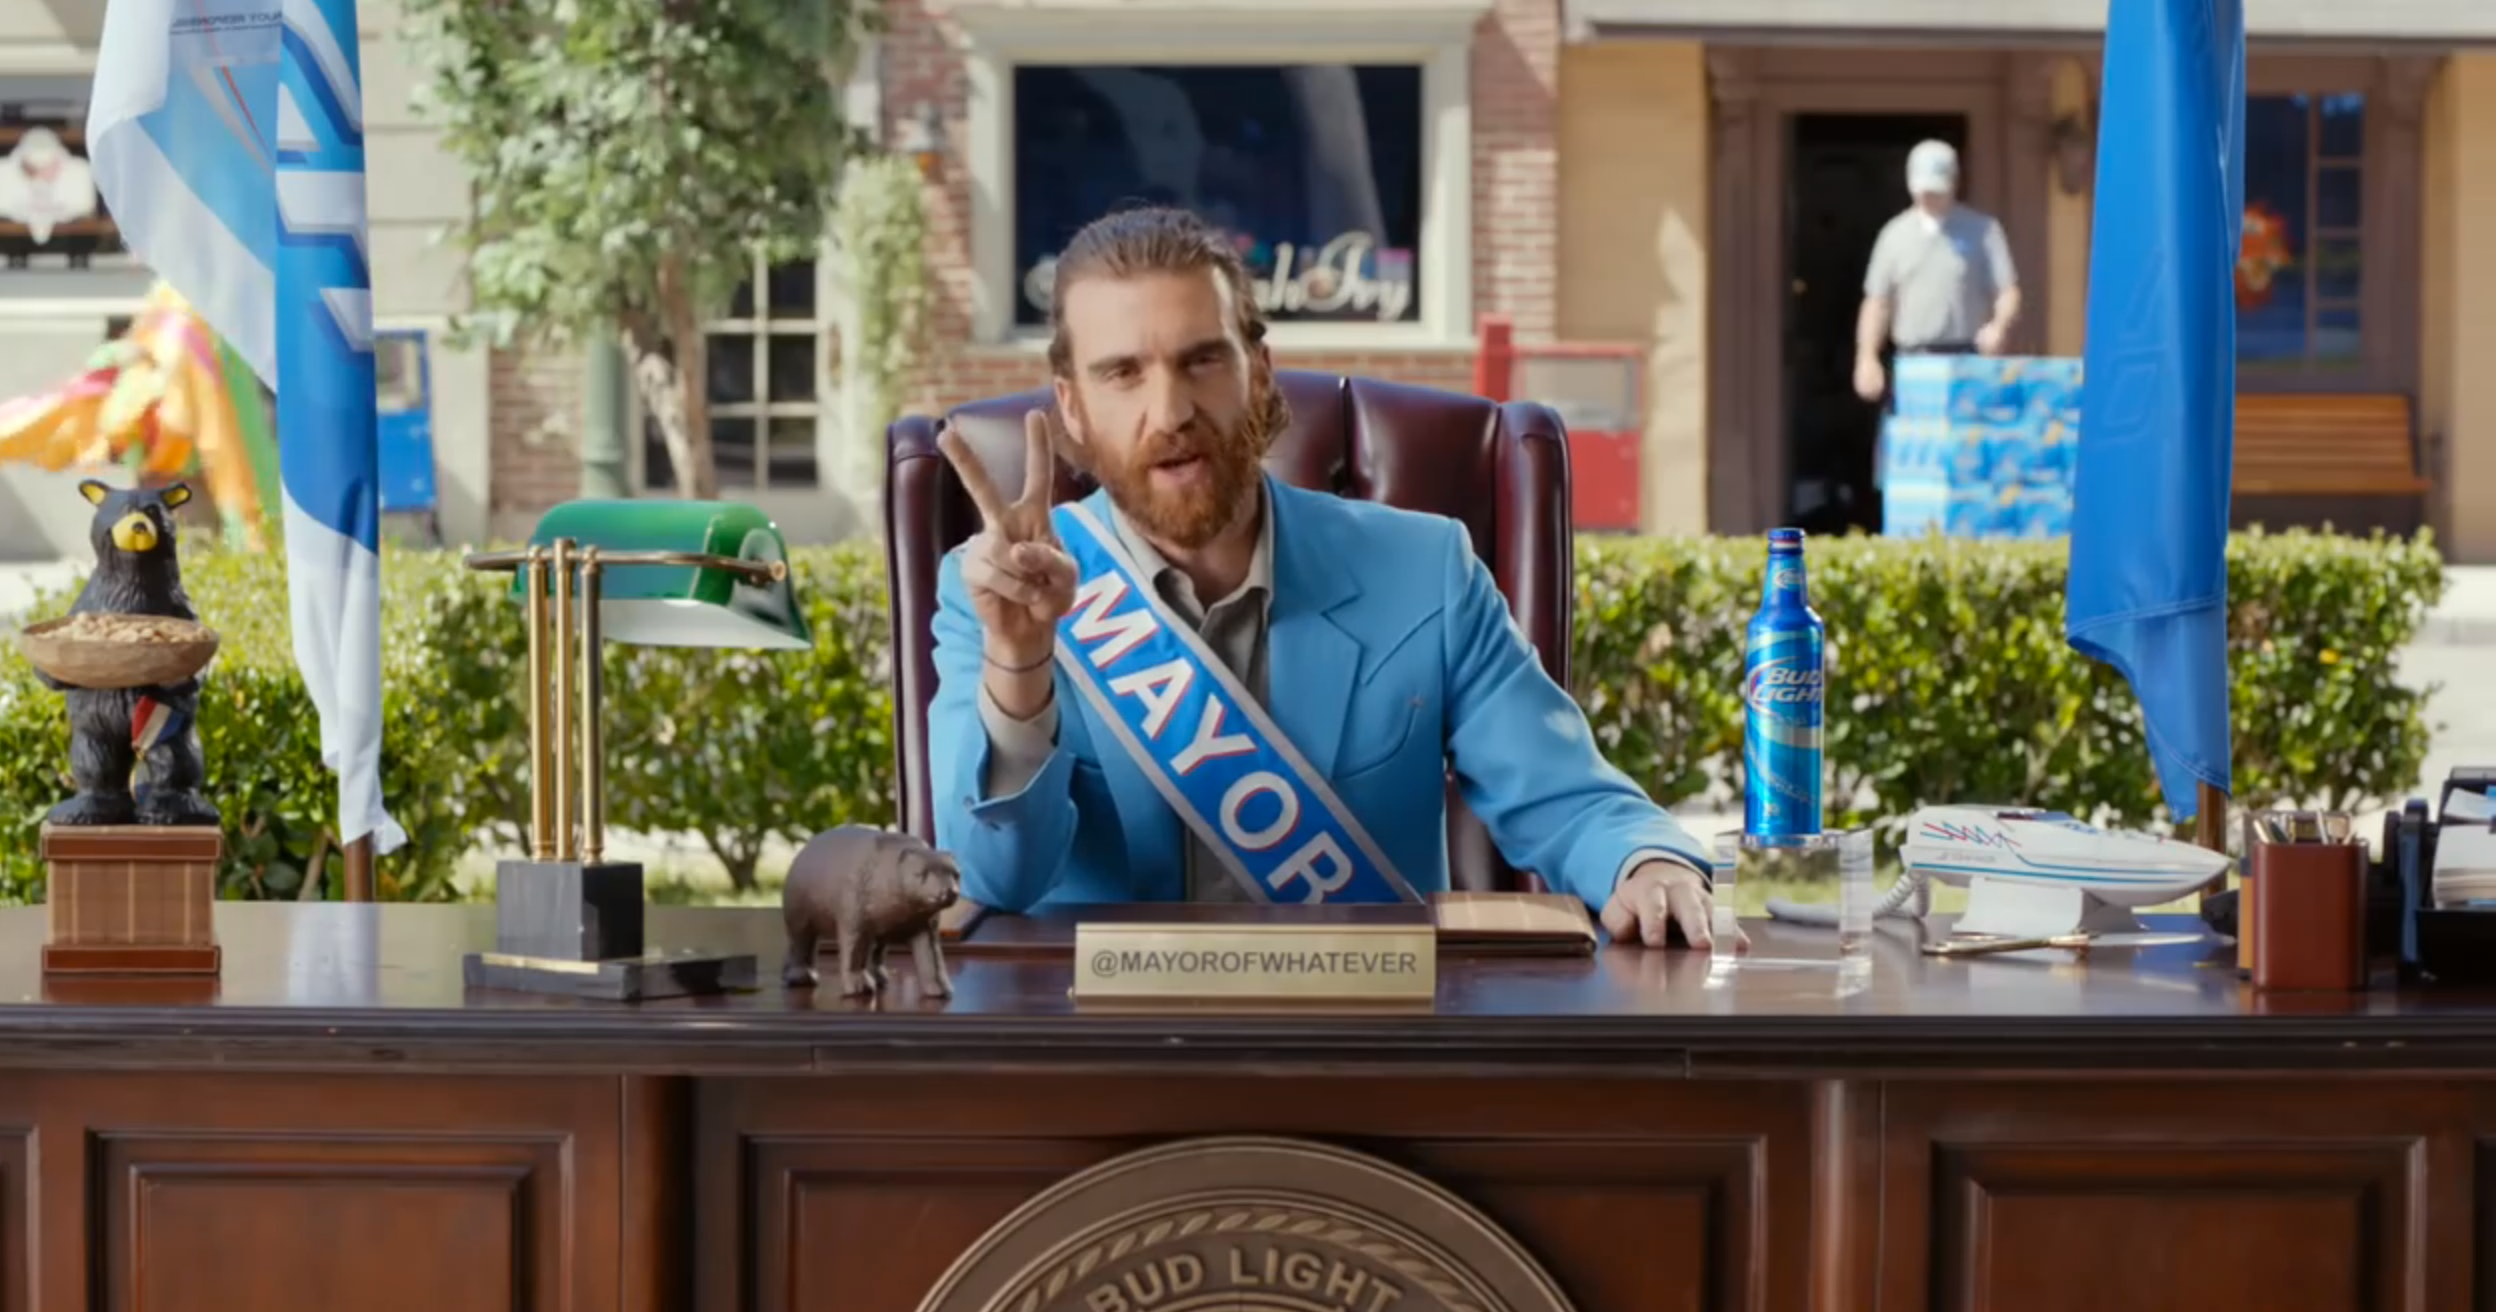 Who plays the mayor of whatever usa in those bud light ads who plays the mayor of whatever usa in those bud light ads wolverine sort of aloadofball Gallery